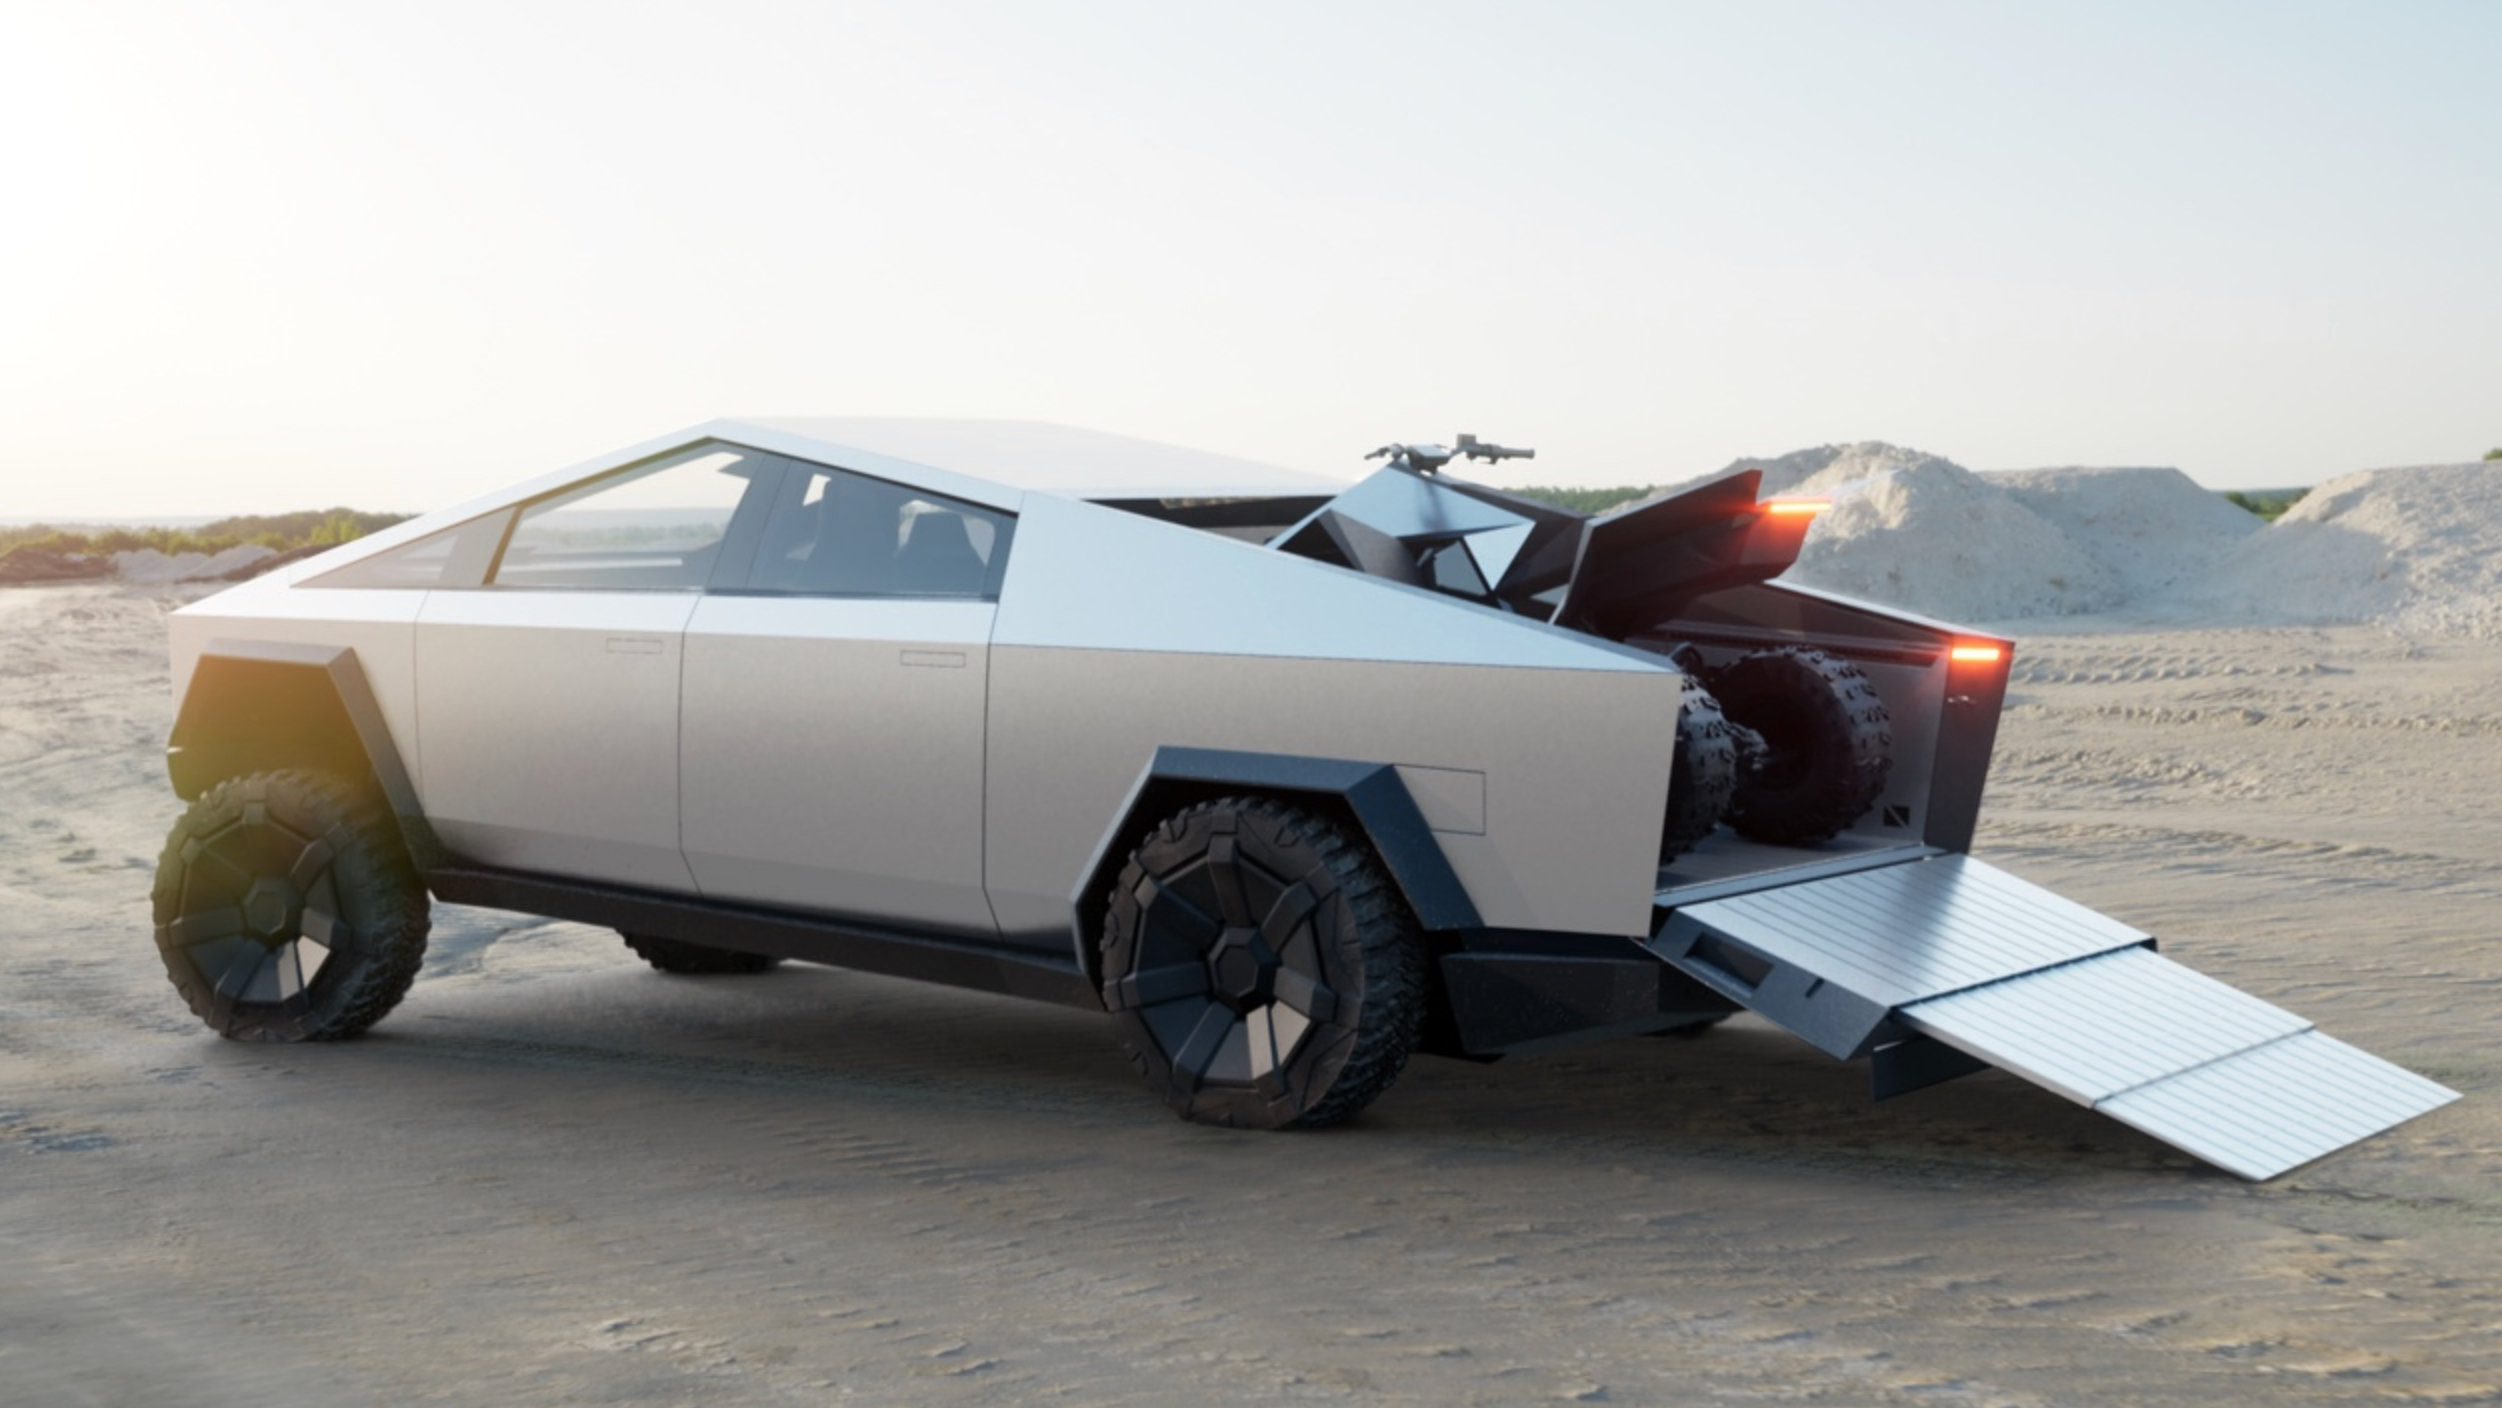 Tesla's Cybertruck Can Charge The Cyberquad In The Bed